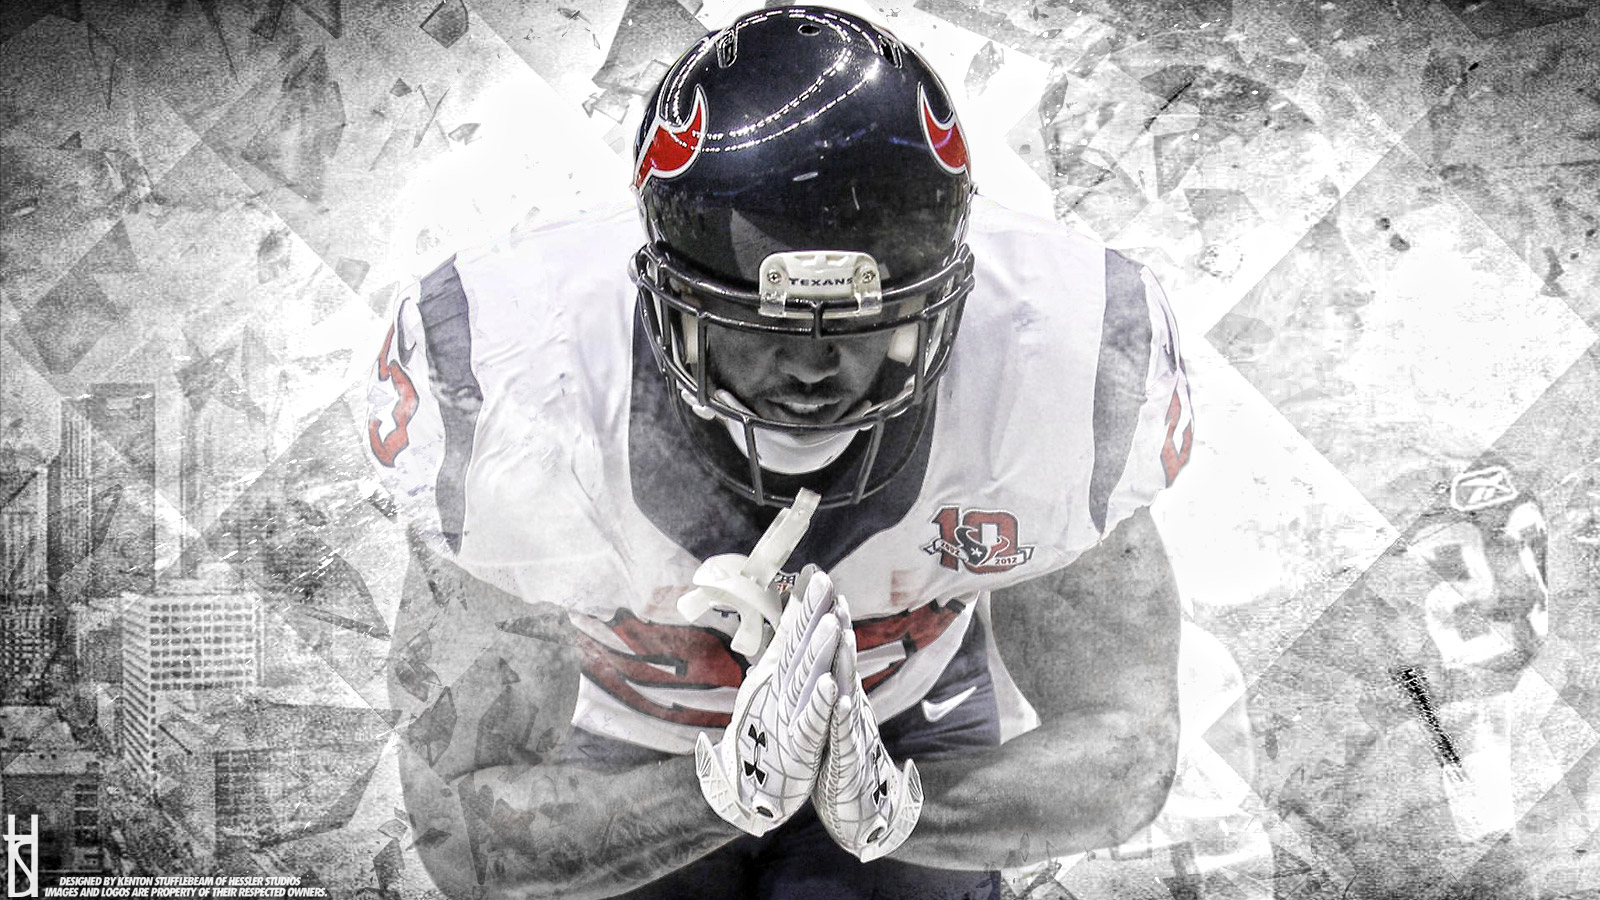 Wallpapers   Arian Foster Houston Texans 1600x900 wallpaper 1600x900